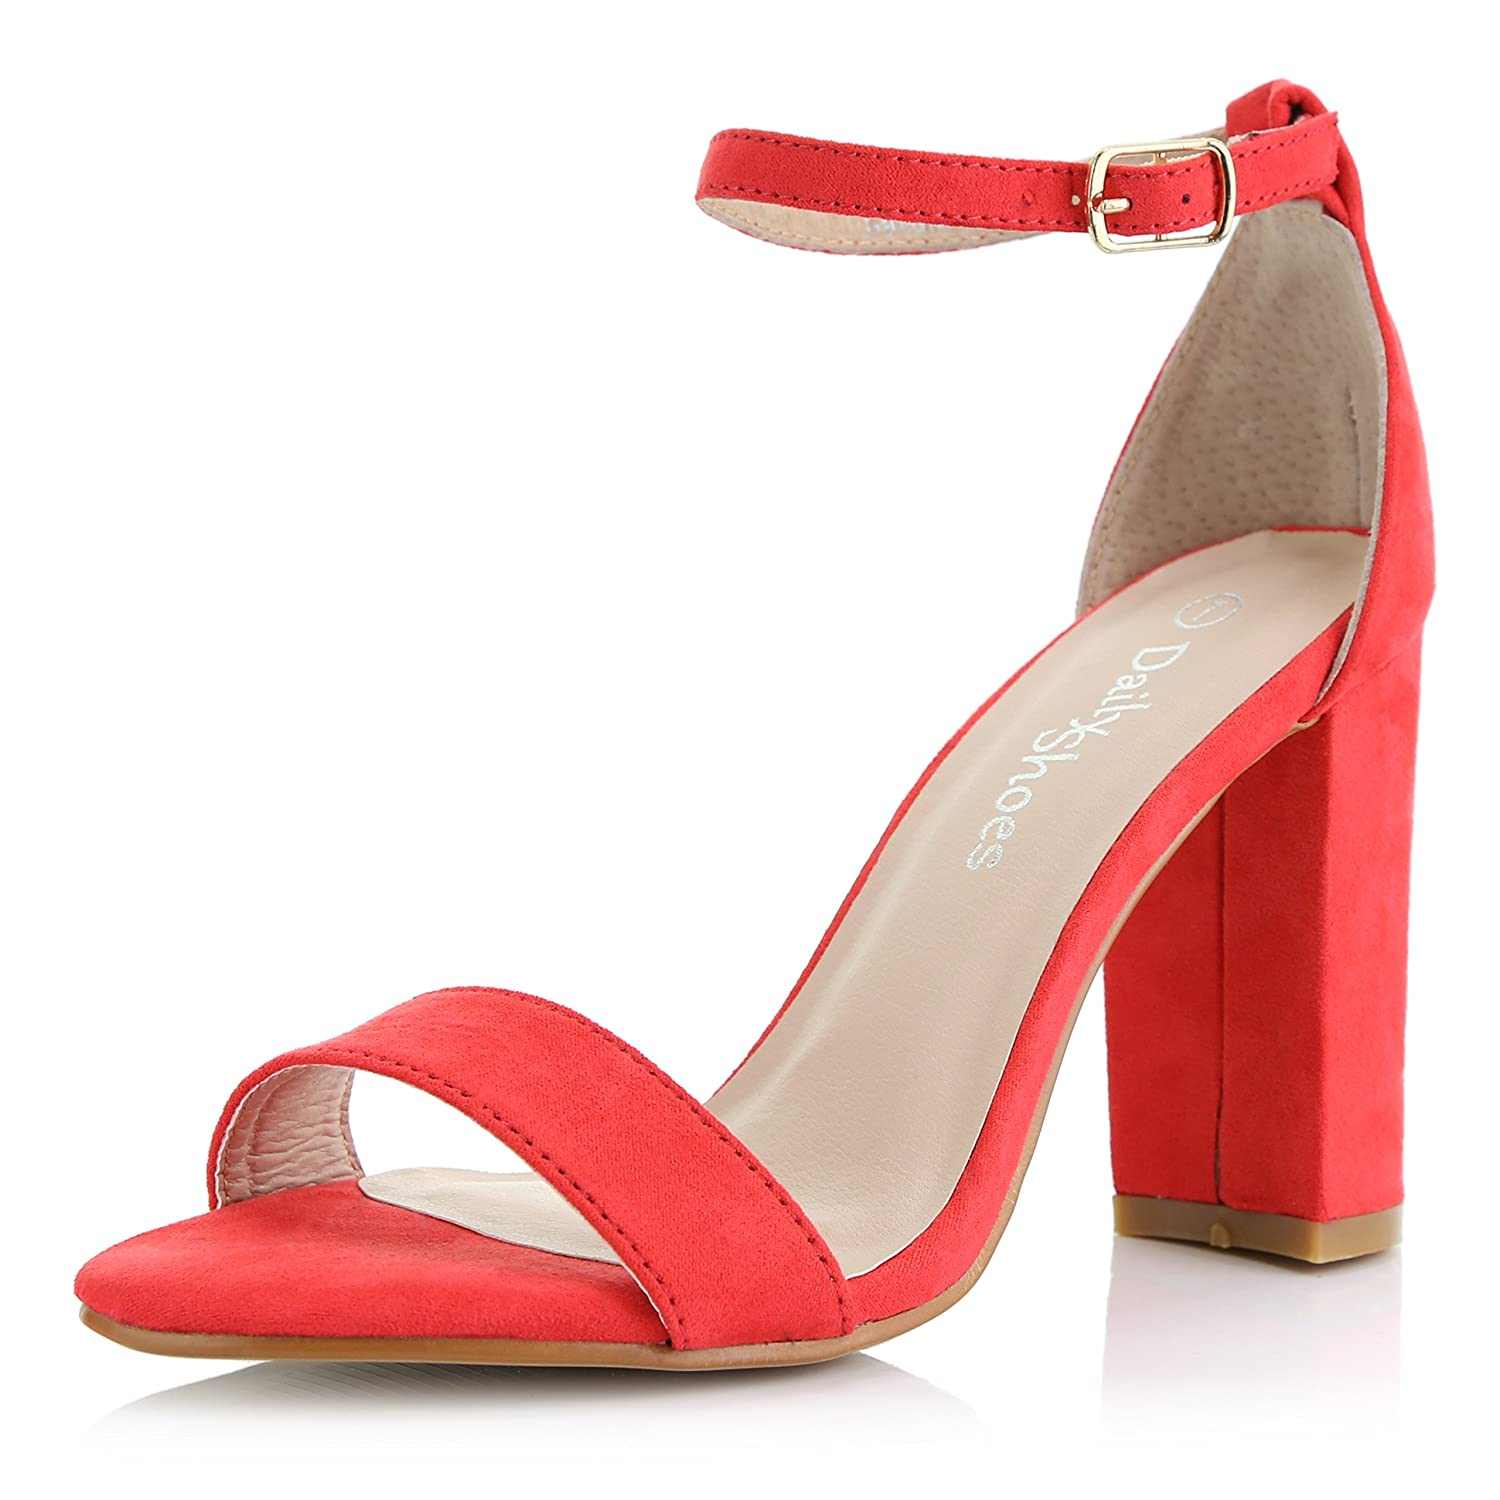 Chunky Toe Ankle With Heel Wedding Pumps Sandal Strap Evening Dailyshoes Buckle Shoes Open Party Women's mwvN80PyOn